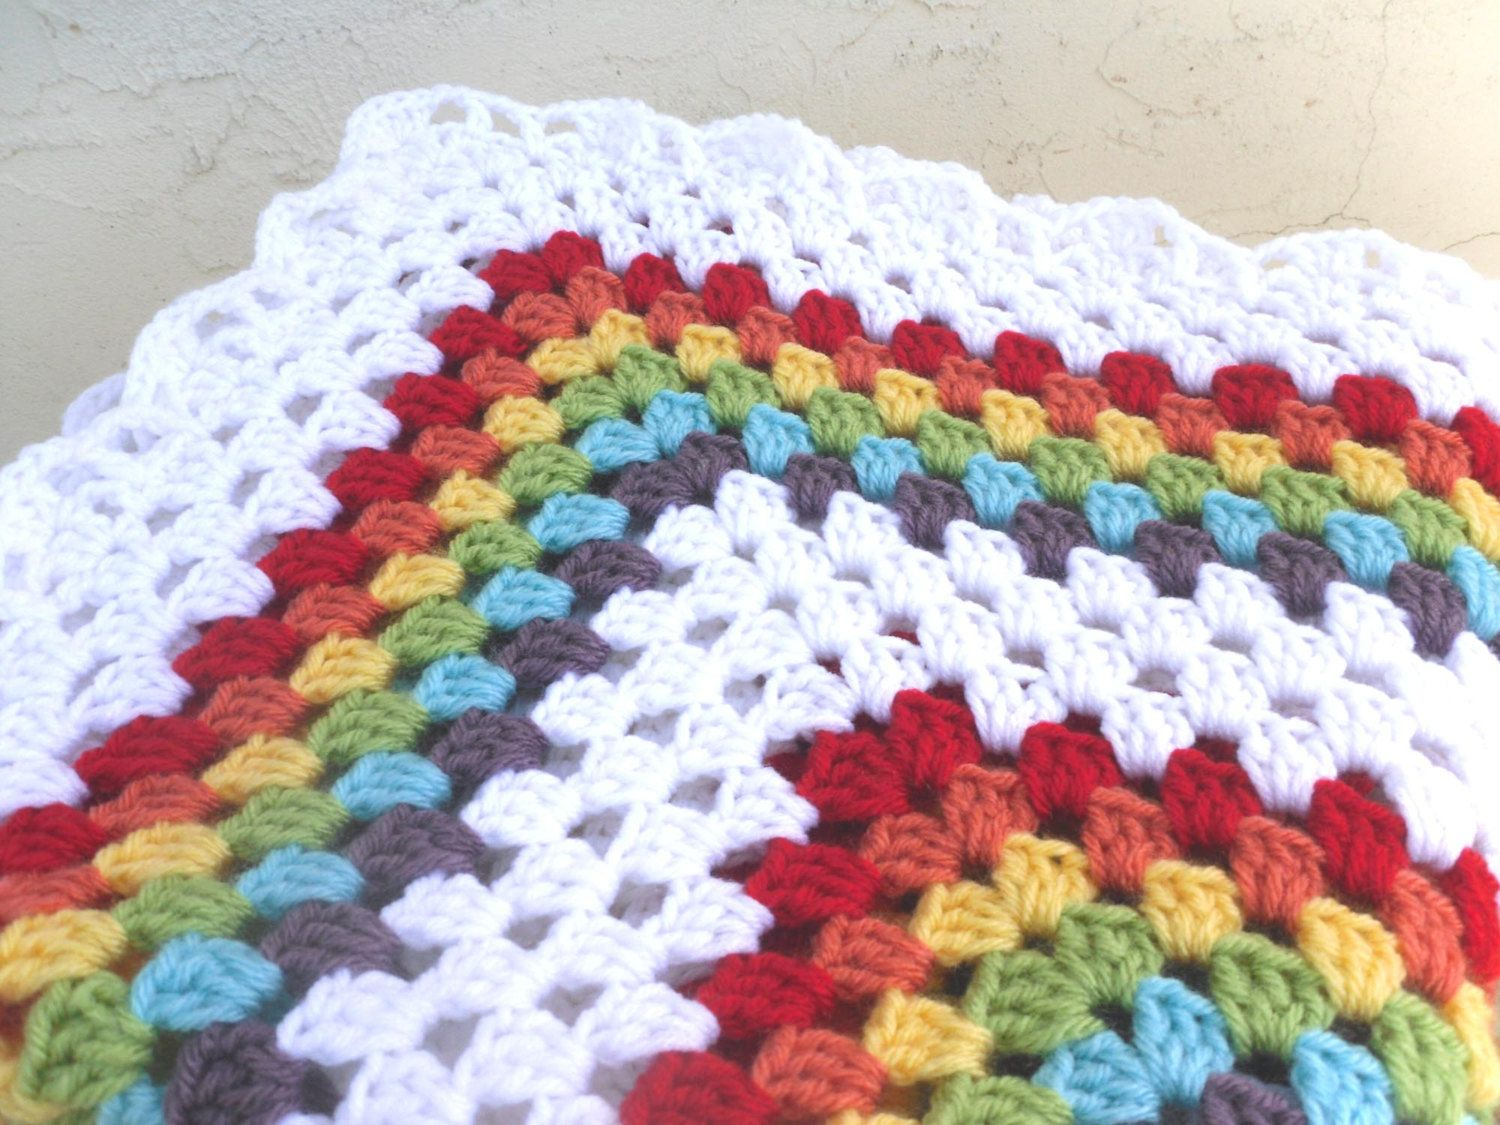 Crochet Baby Afghan Patterns For Beginners : Double Rainbow Granny Square Crochet Baby Blanket Afghan ...